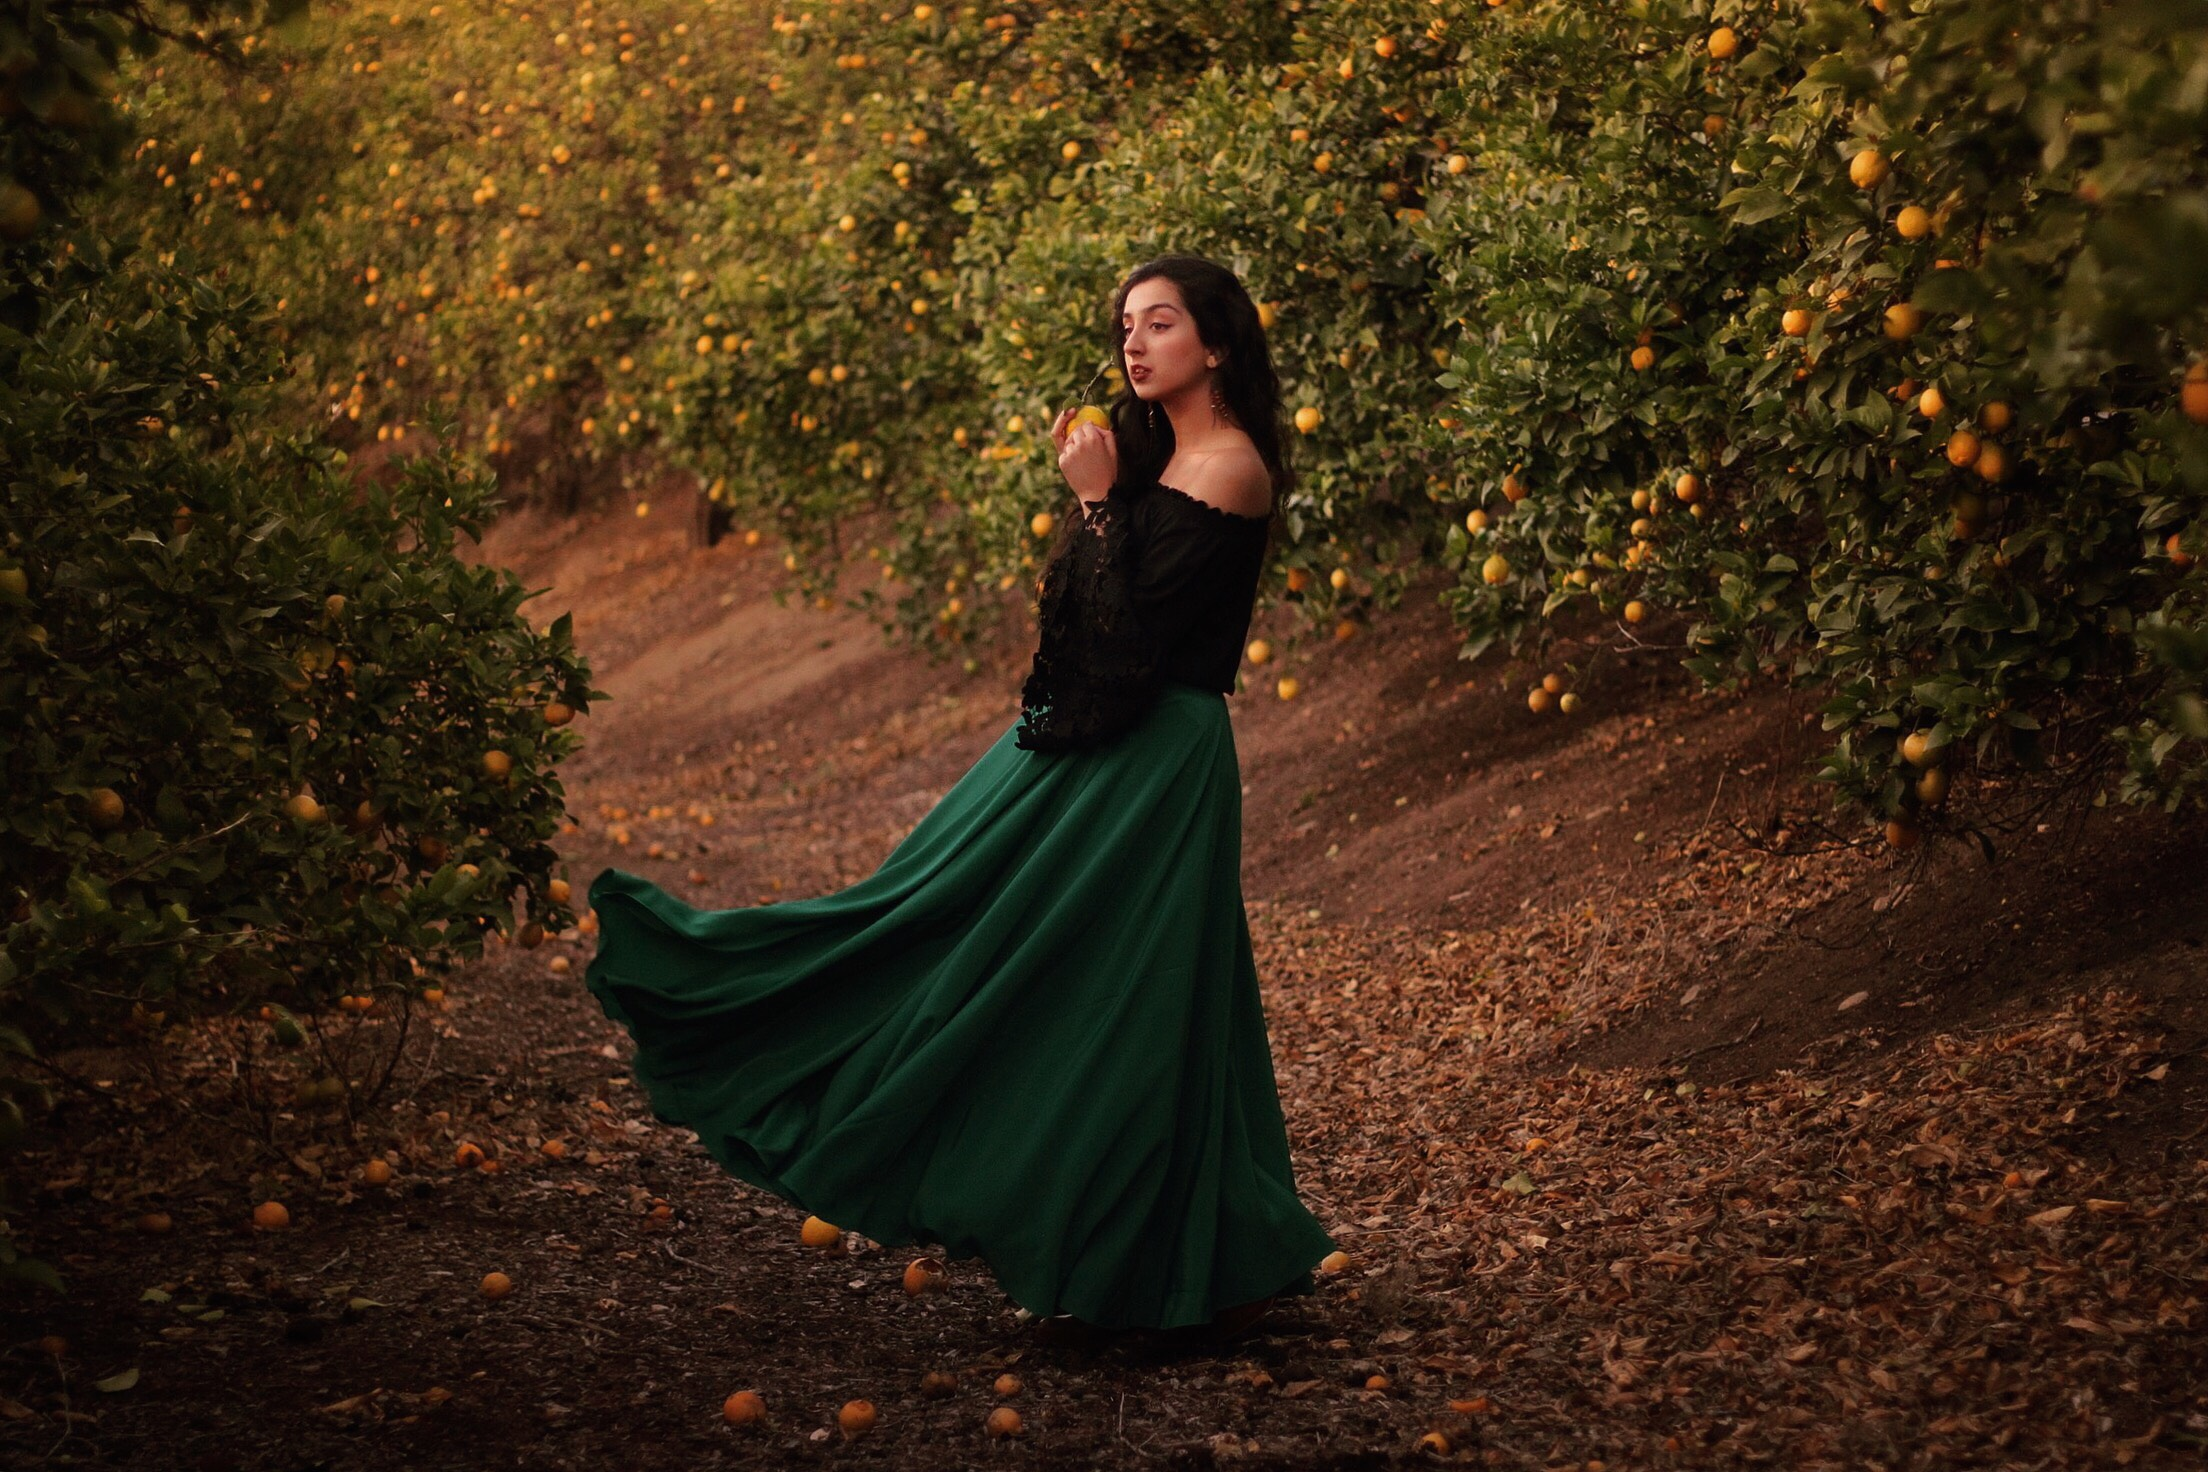 Flowy green maxi skirt // A Week Of Ethical Outfits With Aditi Mayer on The Good Trade